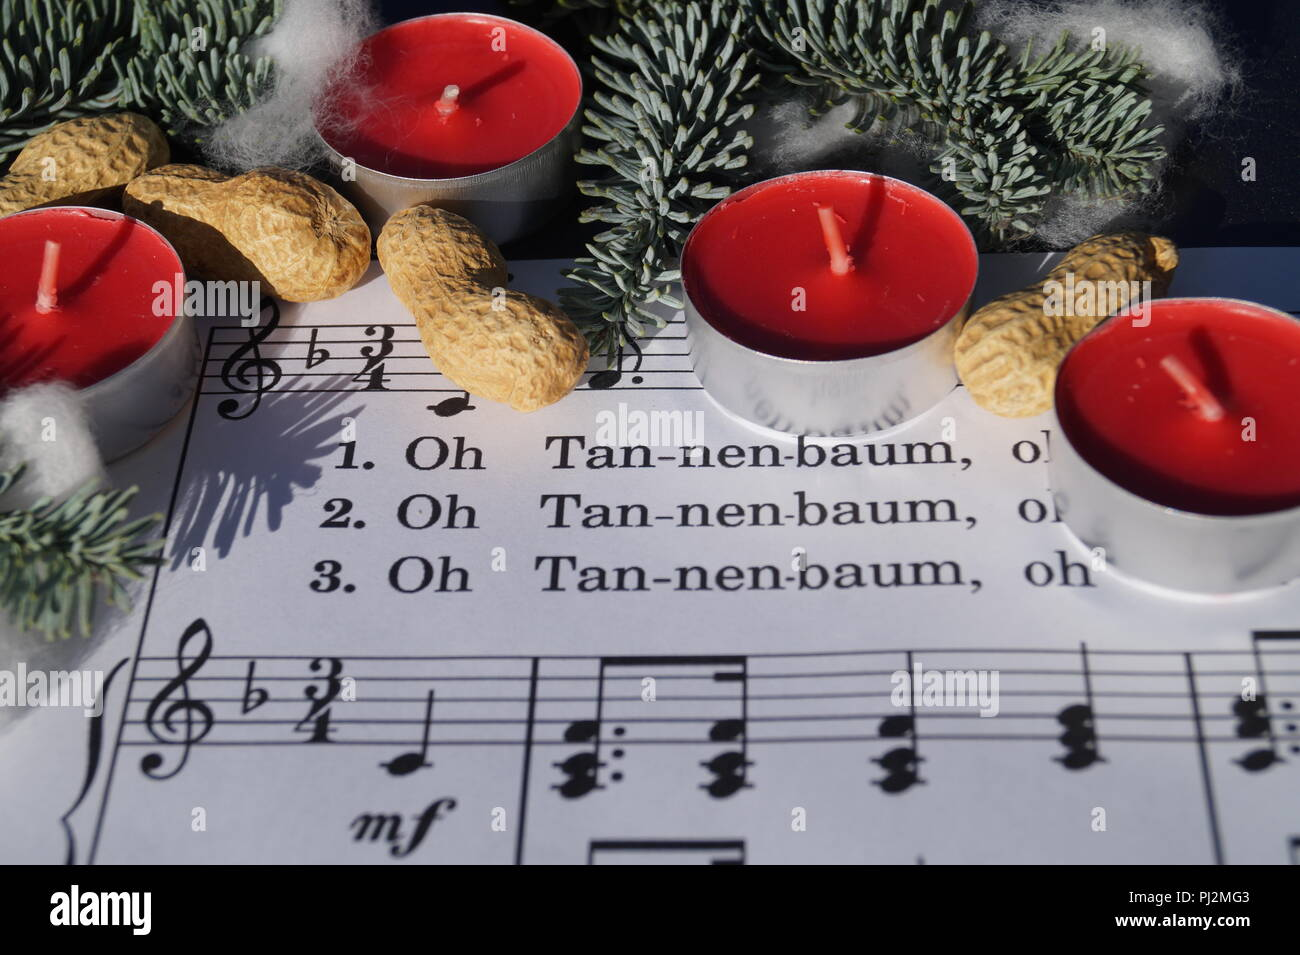 Christmas songs Stock Photo: 217648259 - Alamy